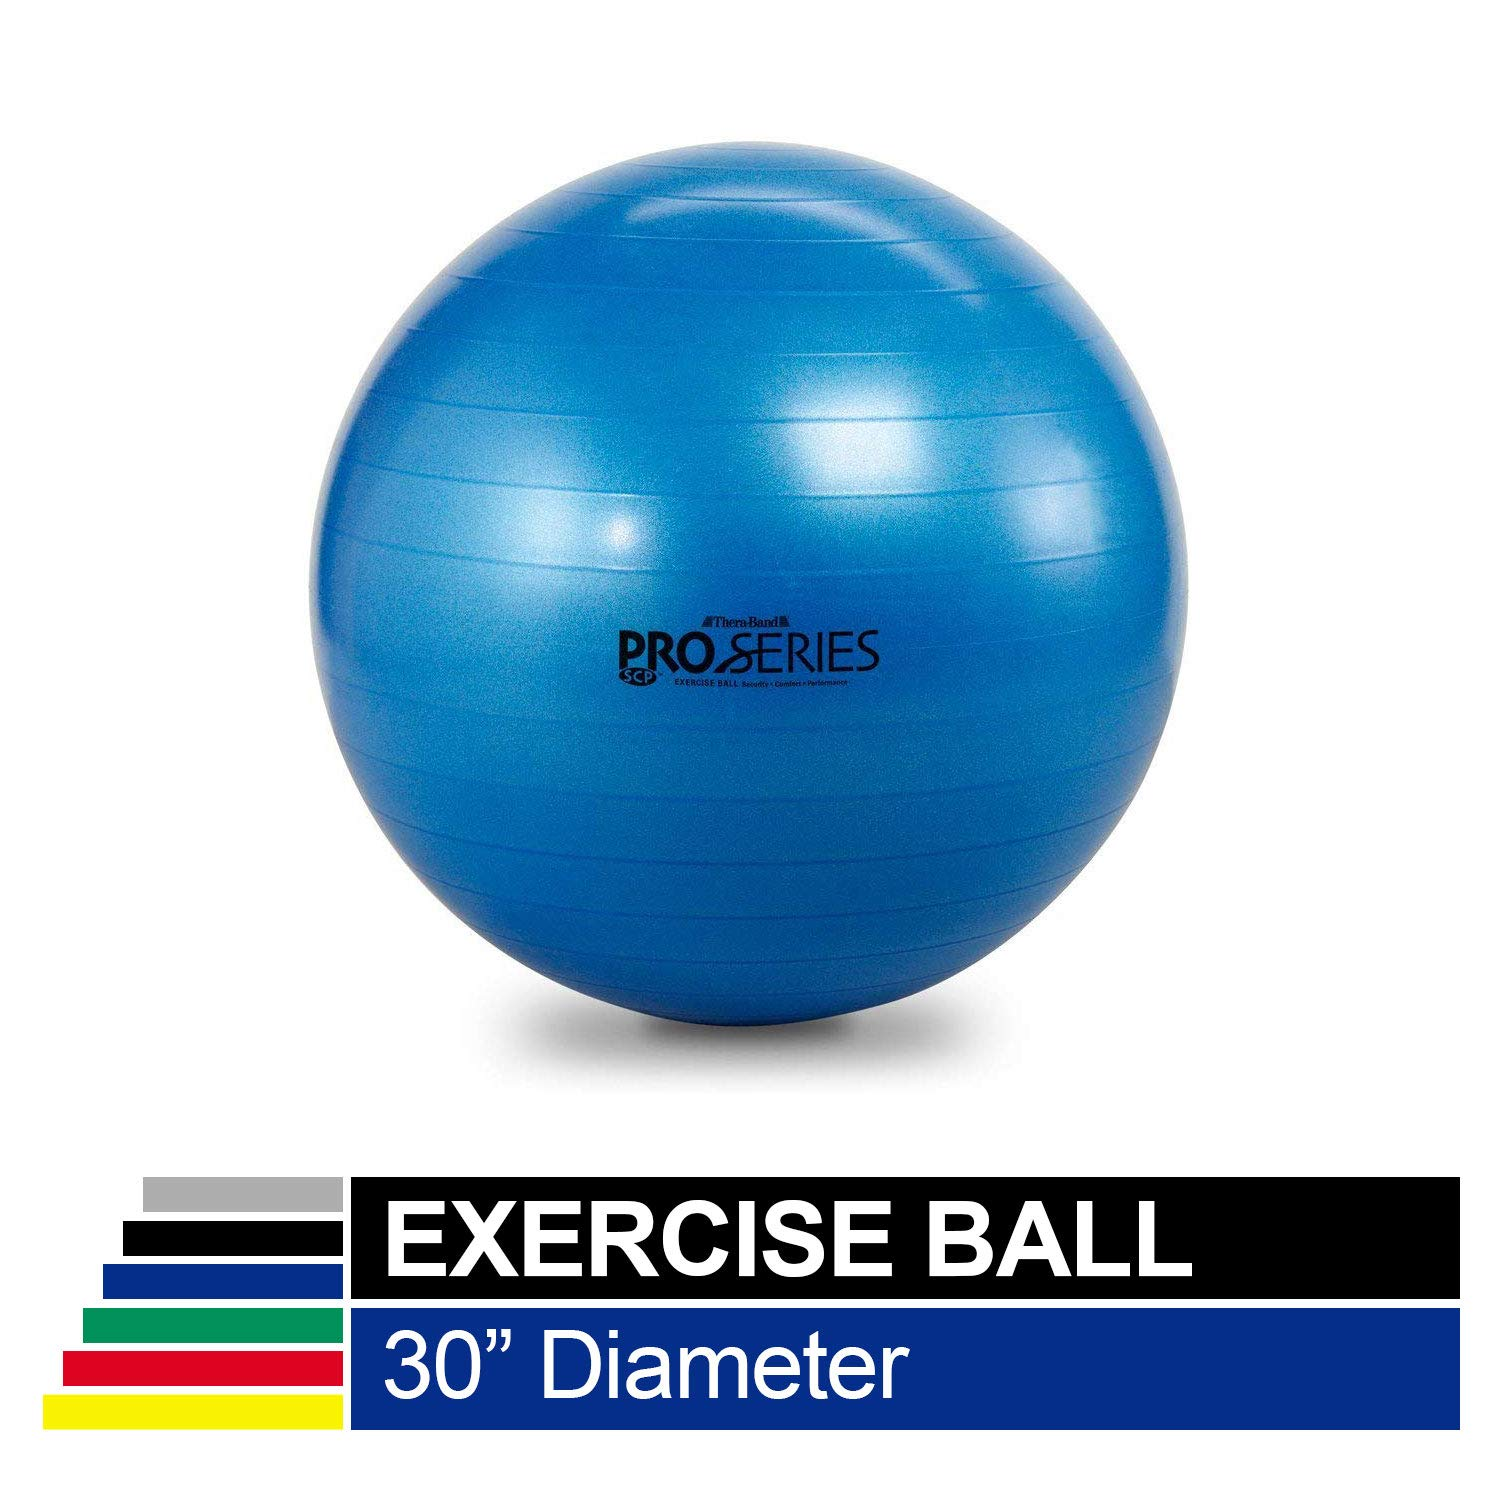 TheraBand Exercise Ball, Professional Series Stability Ball with 75 cm Diameter for Athletes 6'2'' to 6'8'' Tall, Slow Deflate Fitness Ball for Improved Posture, Balance, Yoga, Pilates, Core, Blue by TheraBand